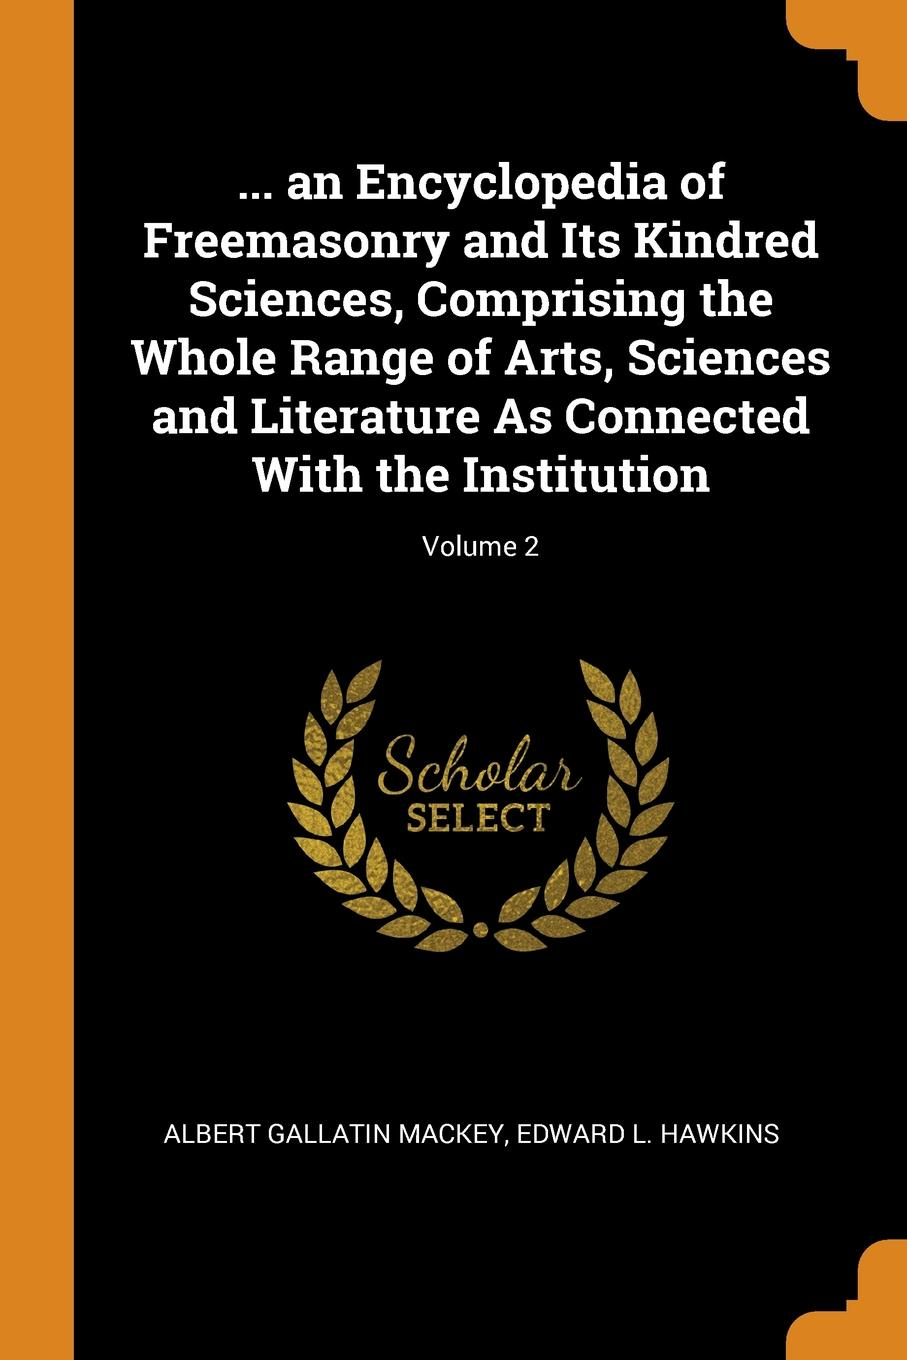 Albert Gallatin Mackey, Edward L. Hawkins. ... an Encyclopedia of Freemasonry and Its Kindred Sciences, Comprising the Whole Range of Arts, Sciences and Literature As Connected With the Institution; Volume 2